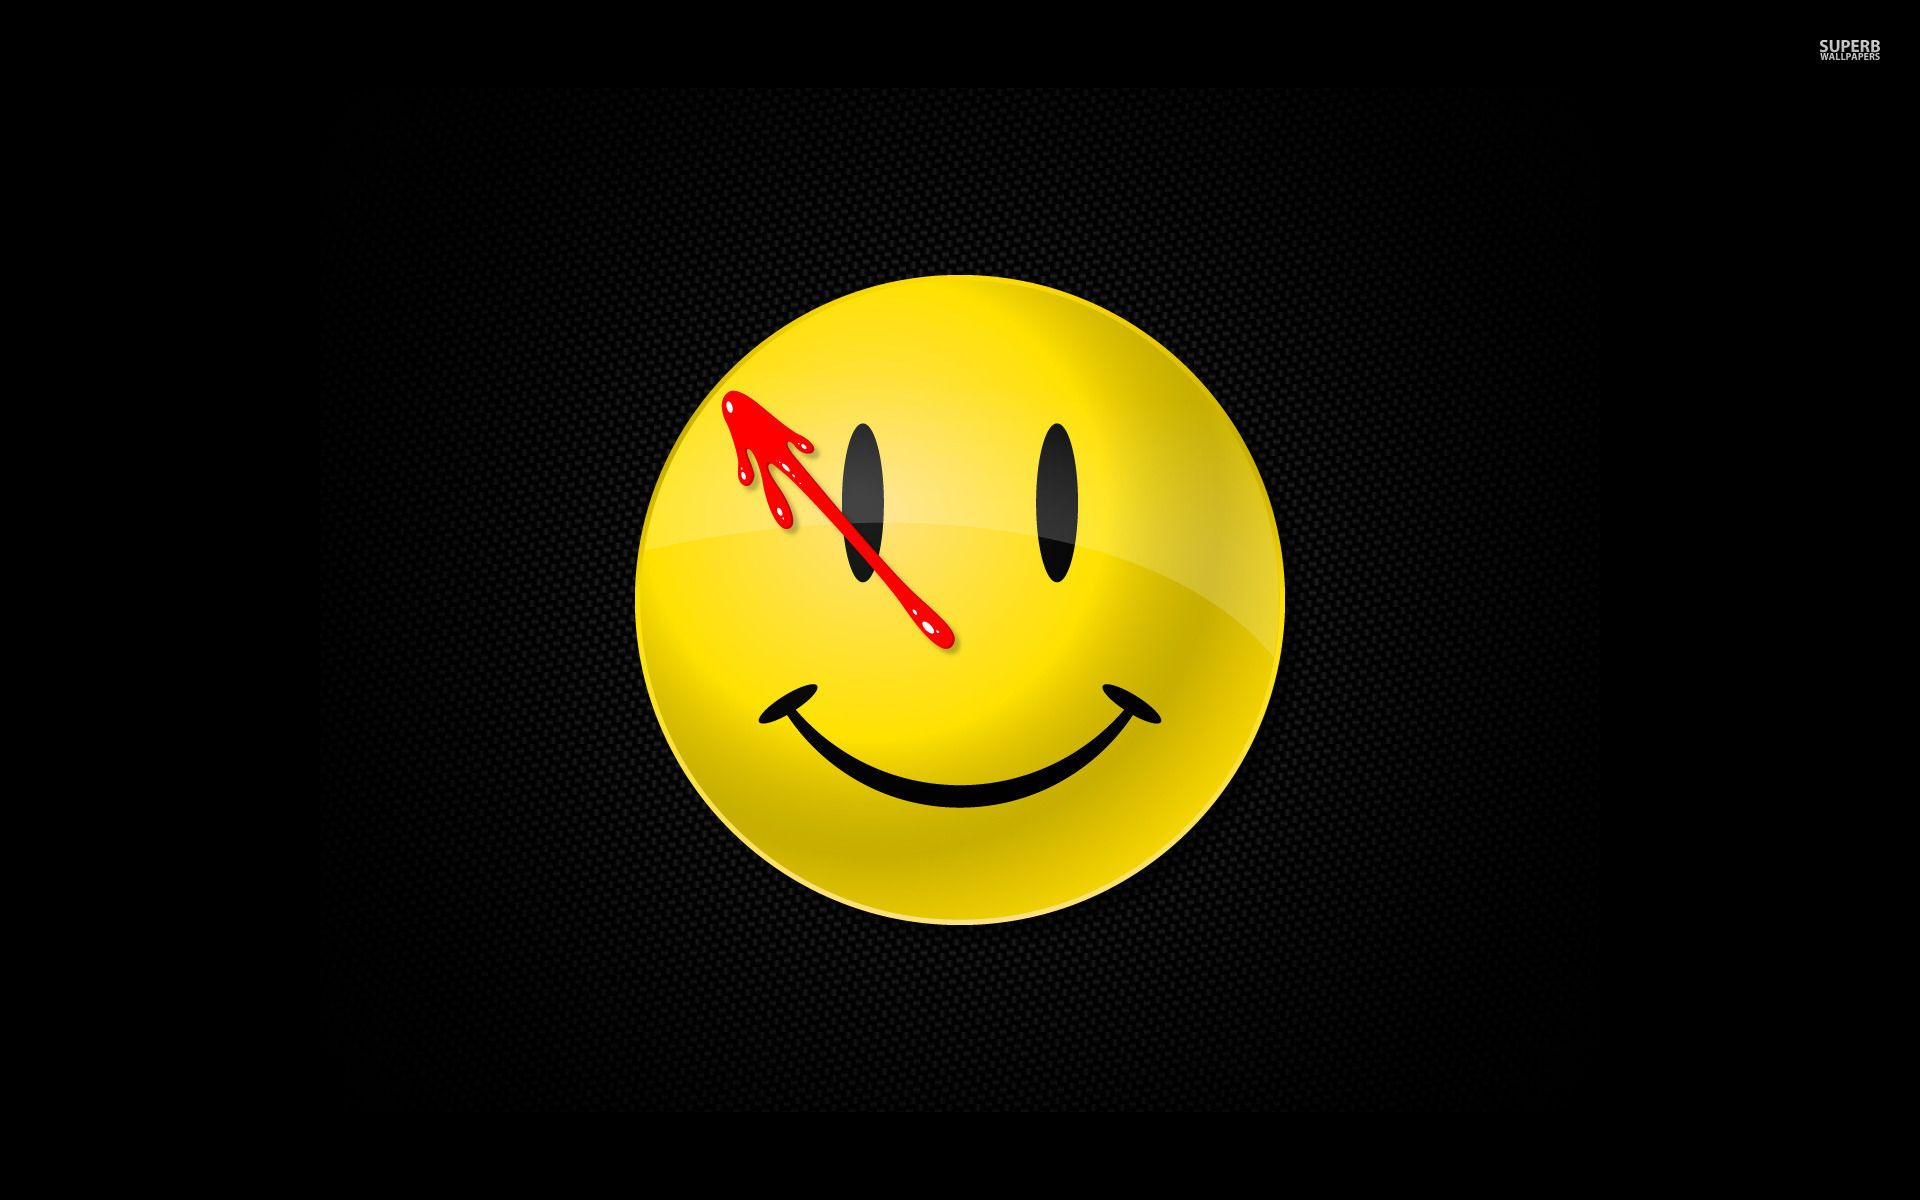 comedian's badge reaching from the darkness - watchmen wallpaper